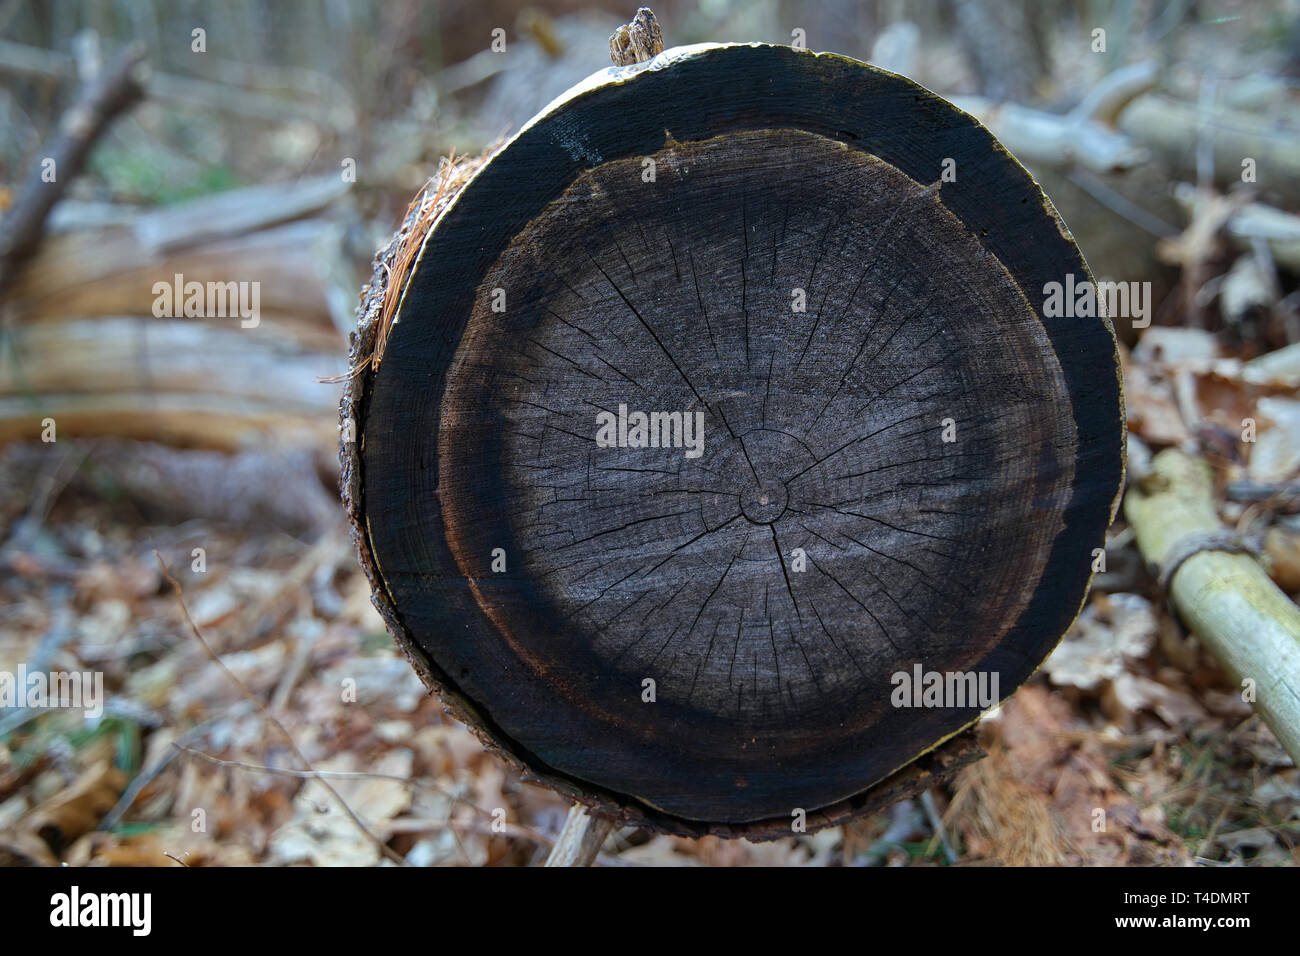 Cross section of a cut tree. Rings of a tree or annual growth rings not only date trees but are historical indicators of past environmental events. - Stock Image